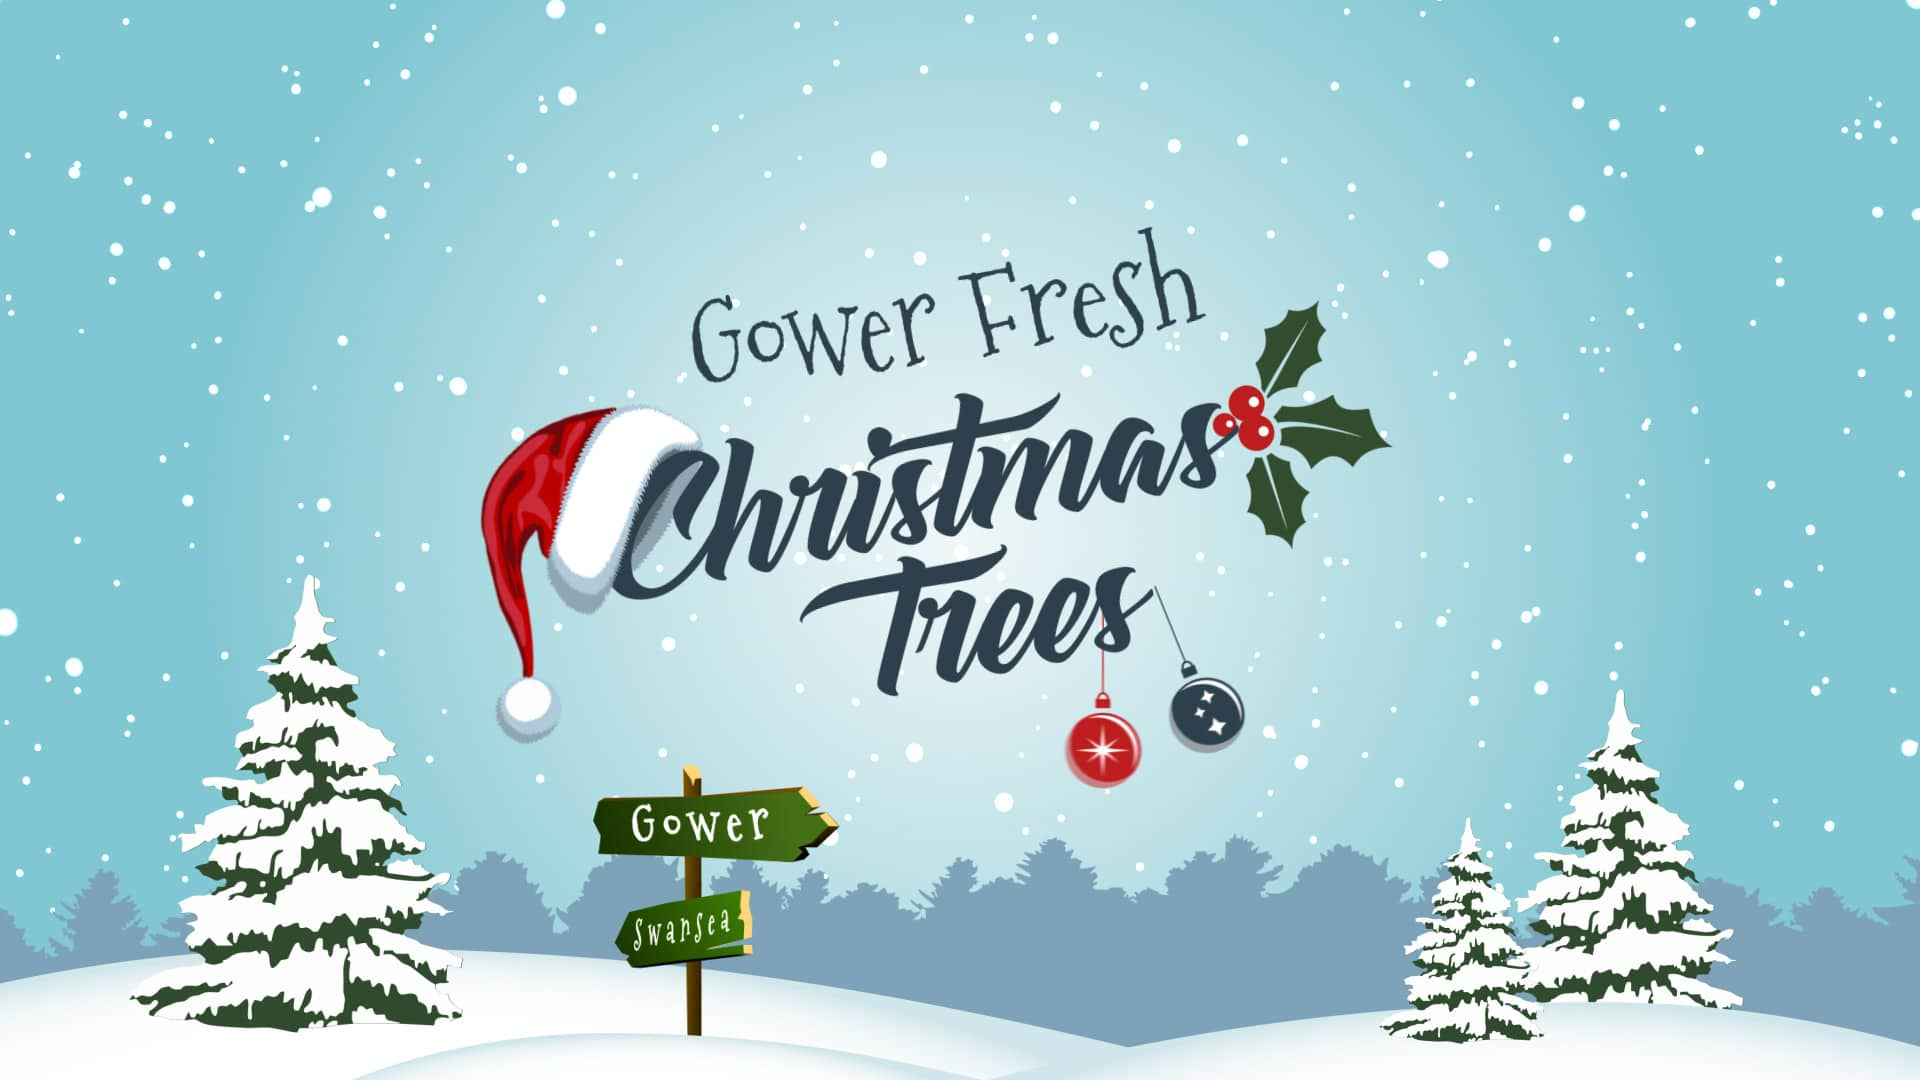 Gower Fresh Christmas Trees- Swansea Winter Wonderland banner